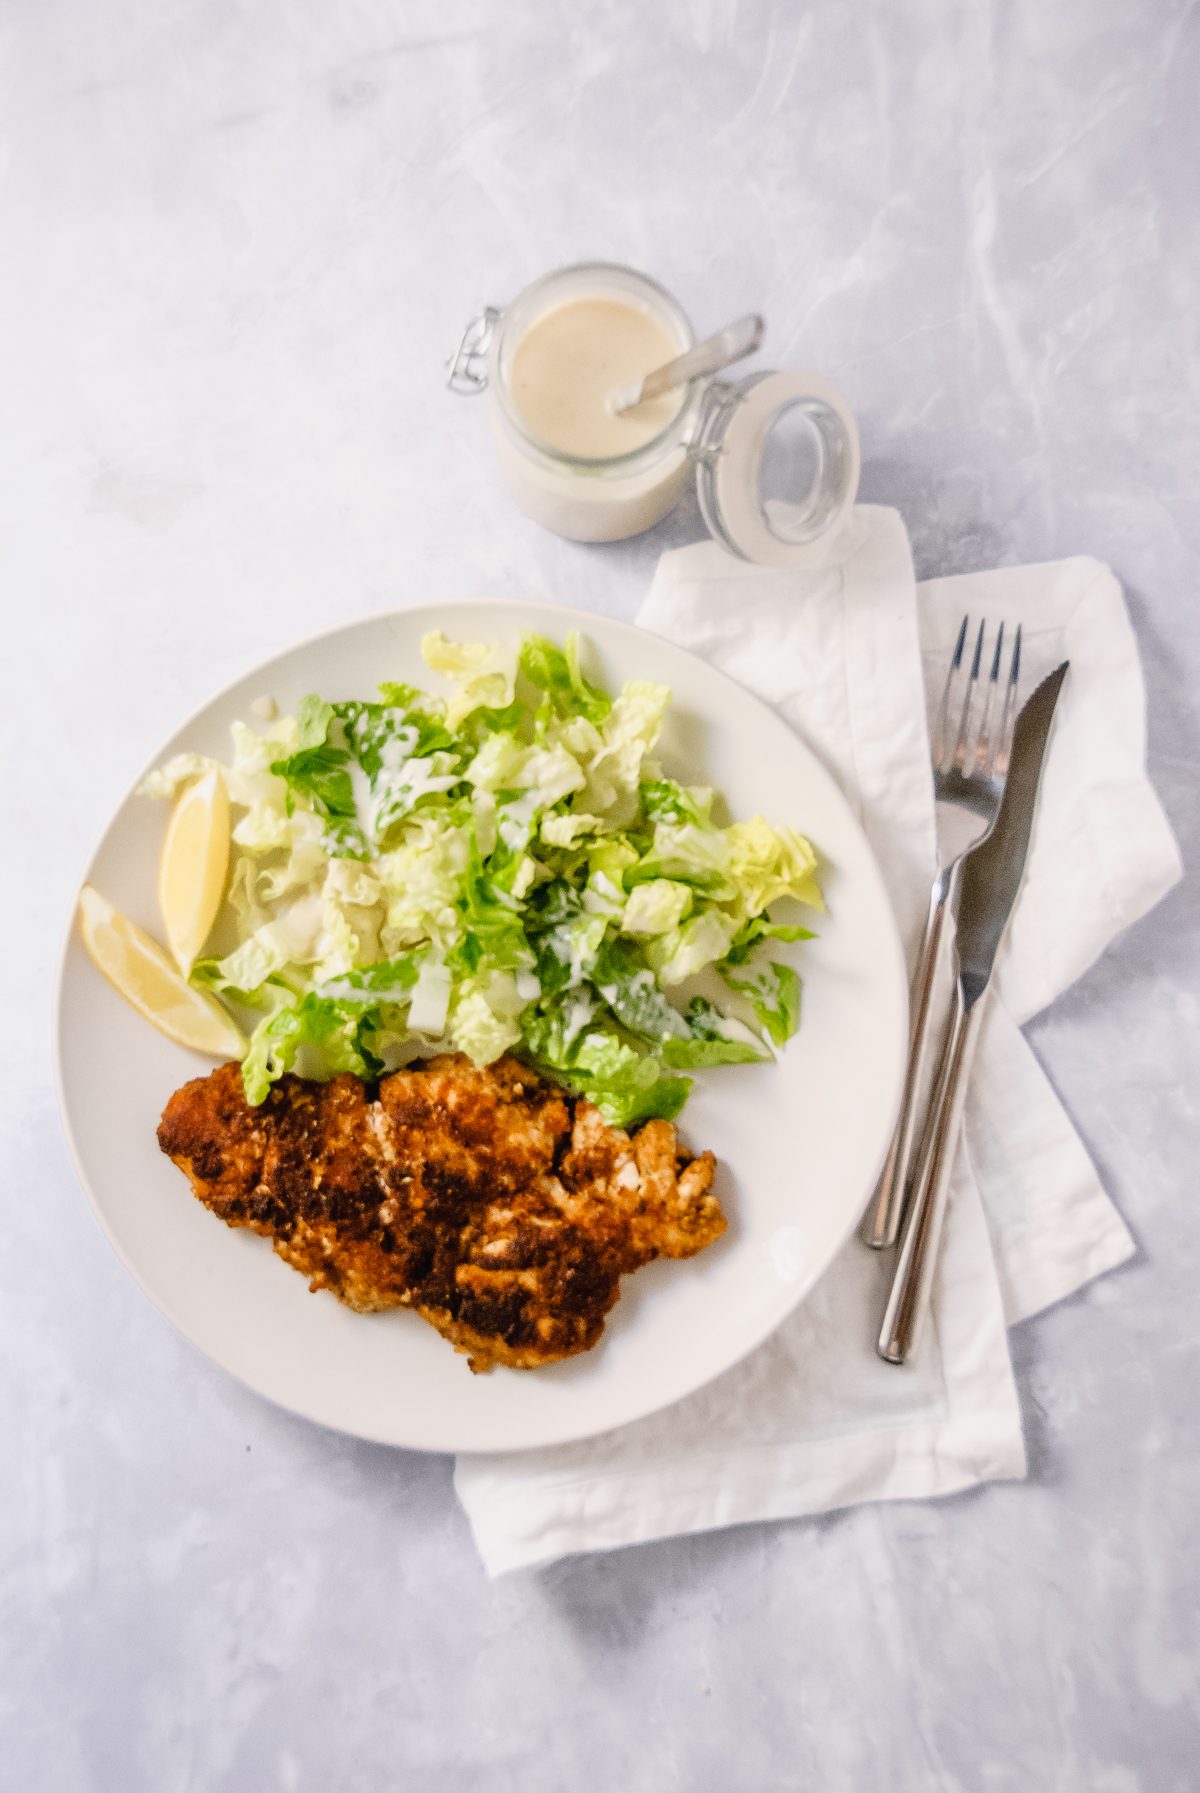 White plate with a caesar salad: romaine lettuce and light caesar salad dressing, lemon slices and chicken cutlets: breaded chicken fried in garlic infused oil.